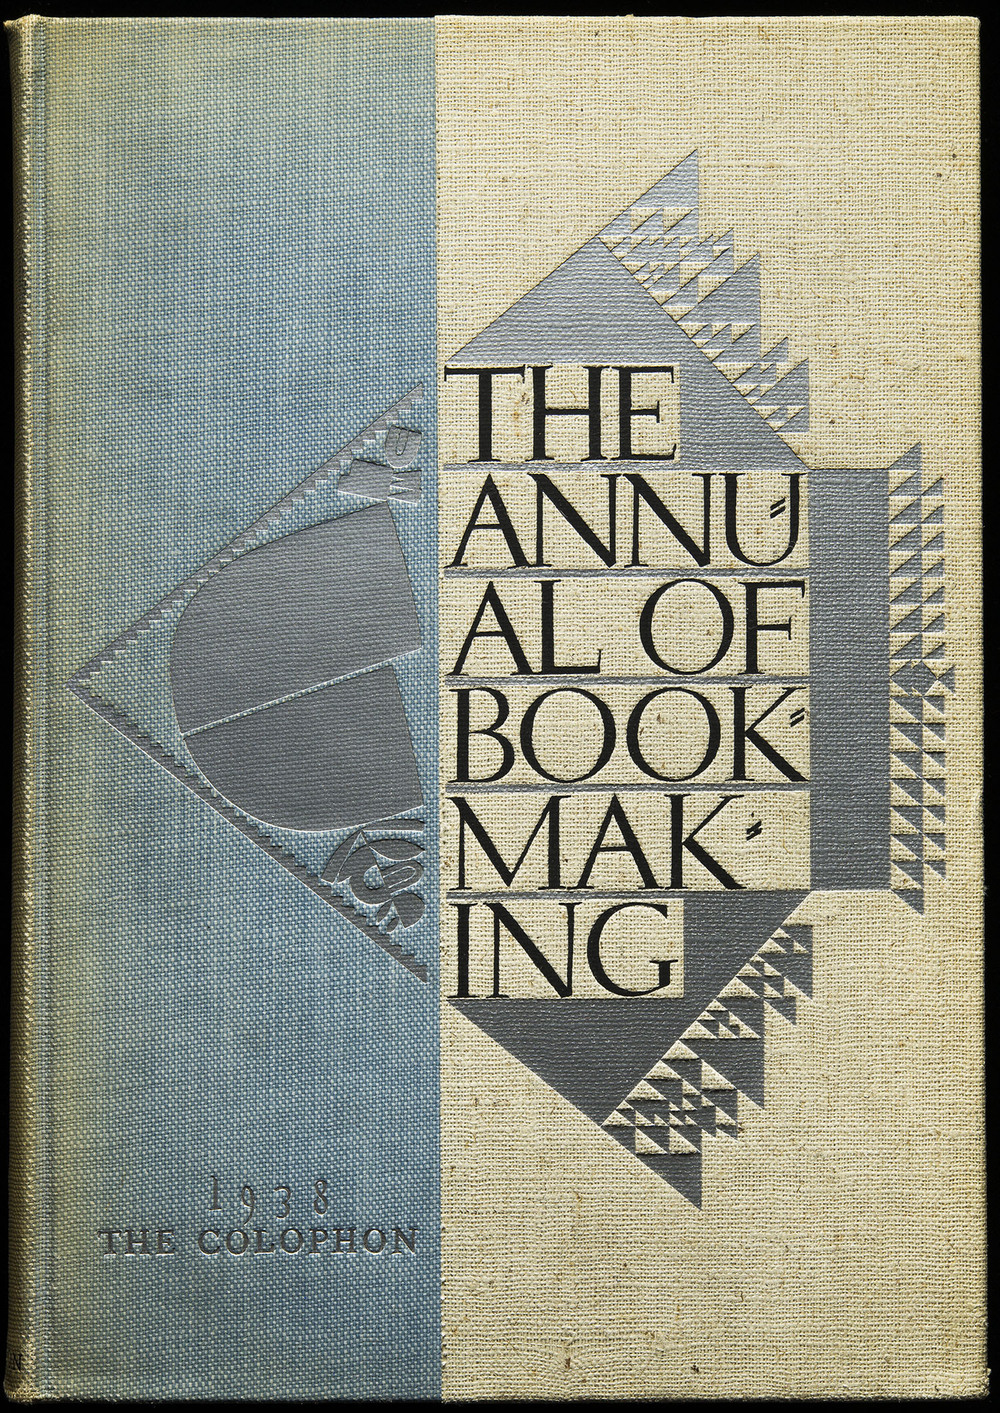 The Annual of Bookmaking , The Colophon, New York, 1938, 18.4 x 27.3 cm